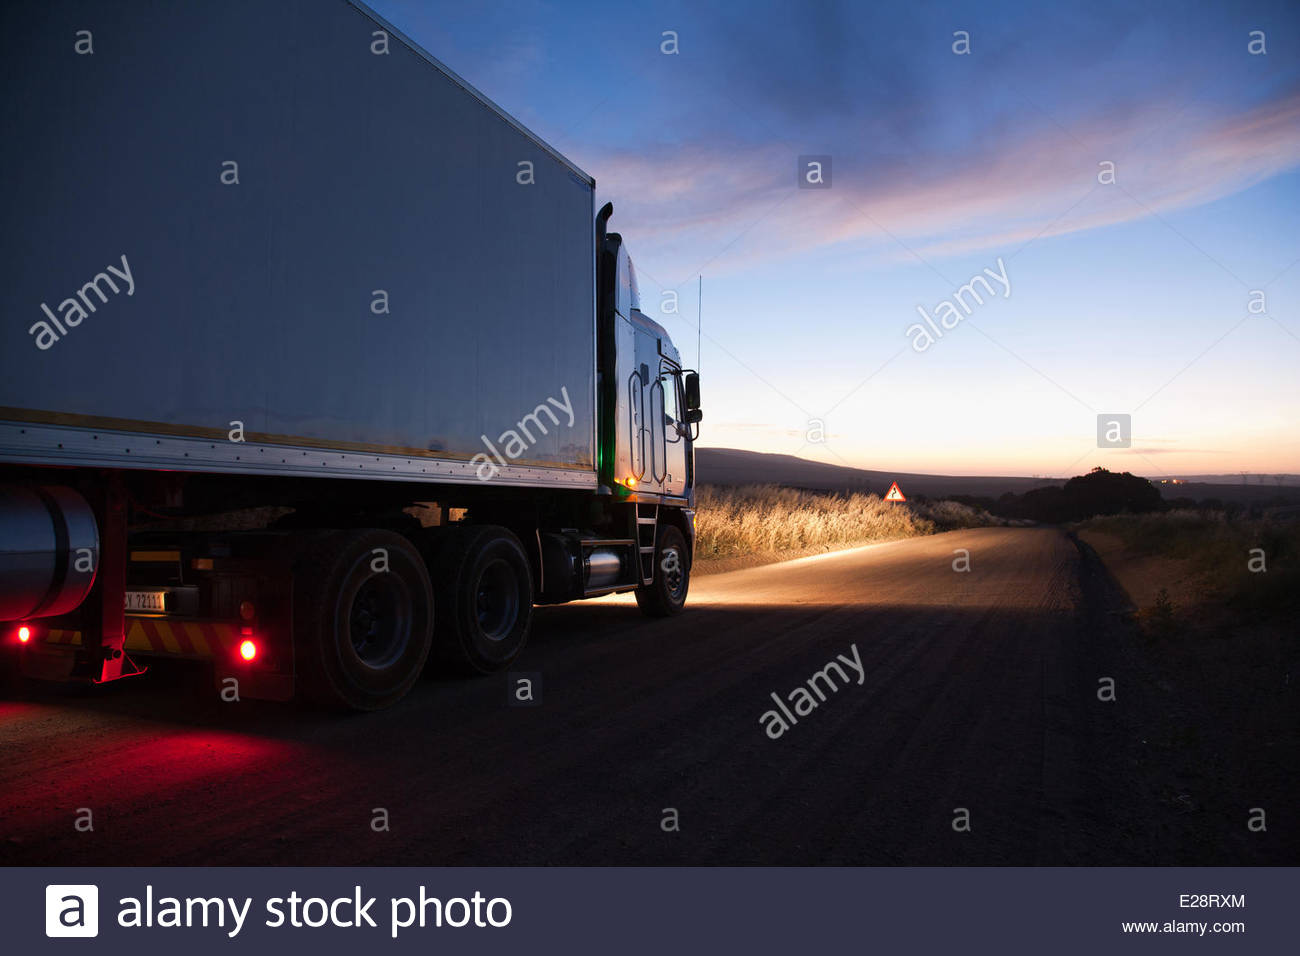 Semi-truck driving on dirt road - Stock Image